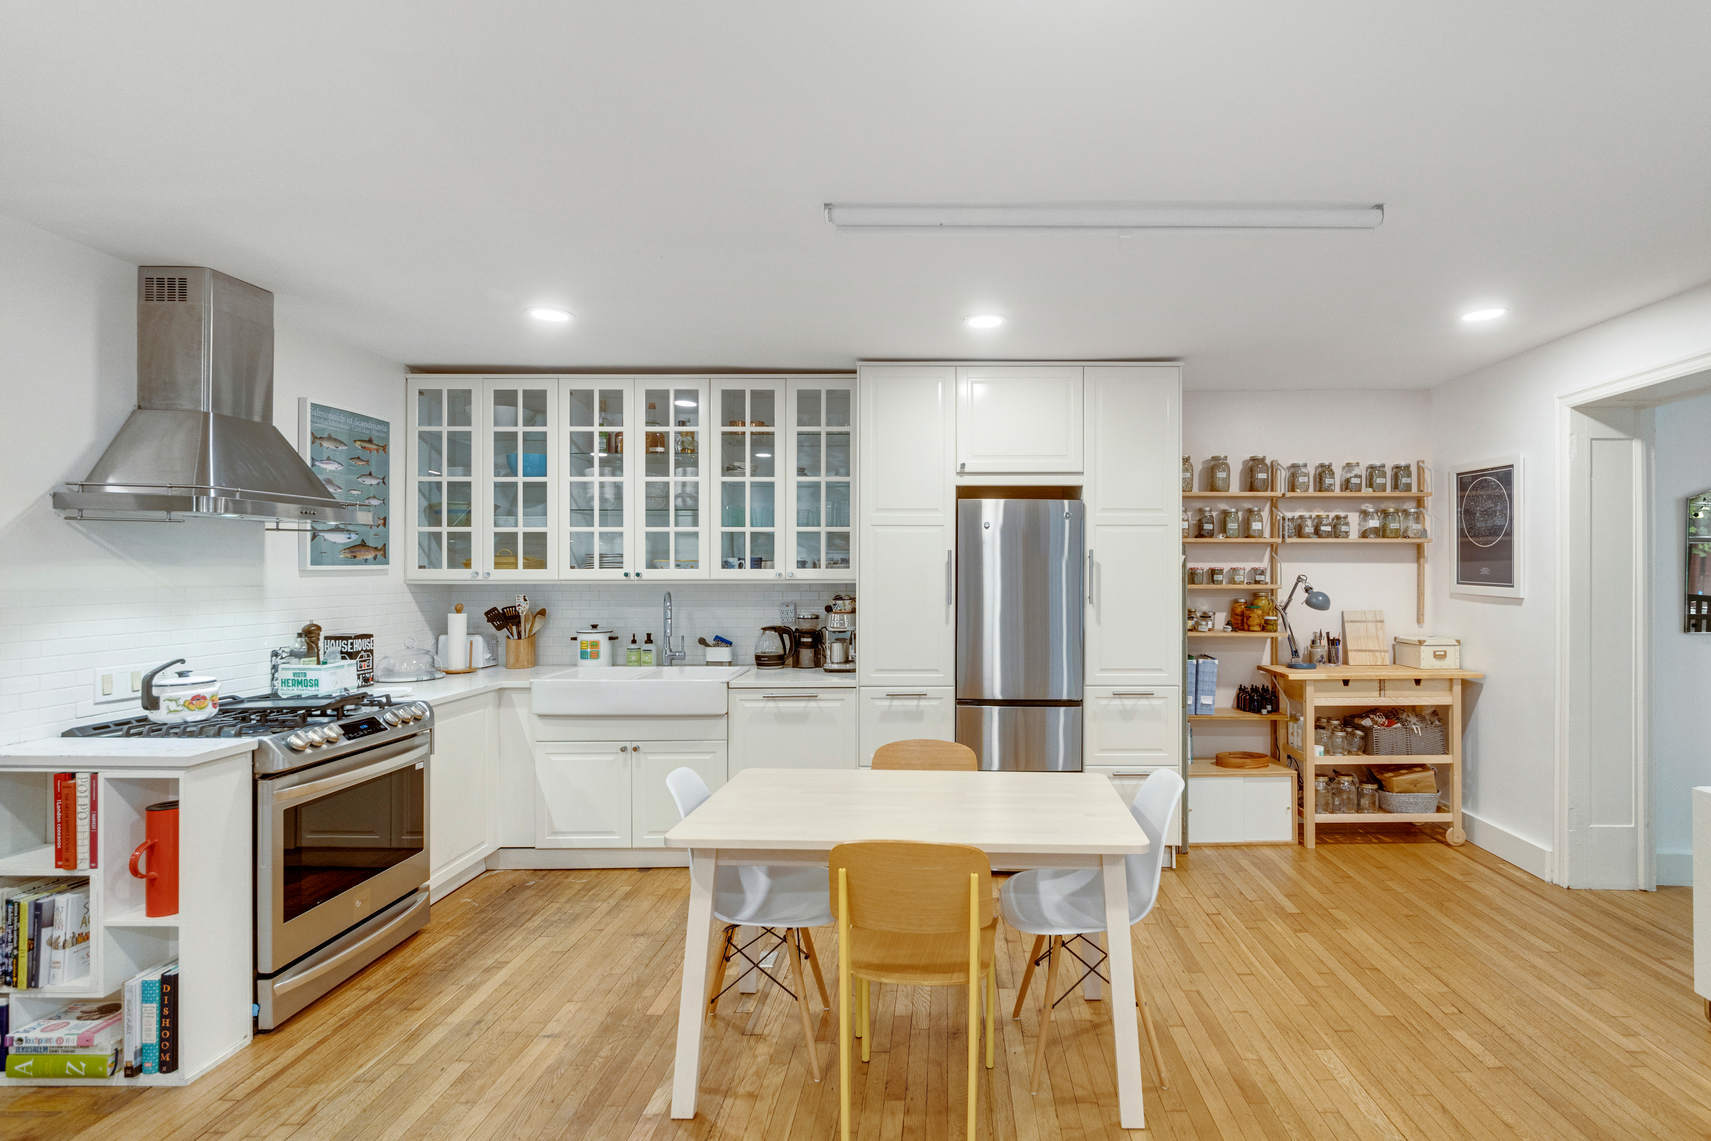 55 Montgomery Place, Unit 1R, Brooklyn, NY 11215 | Compass